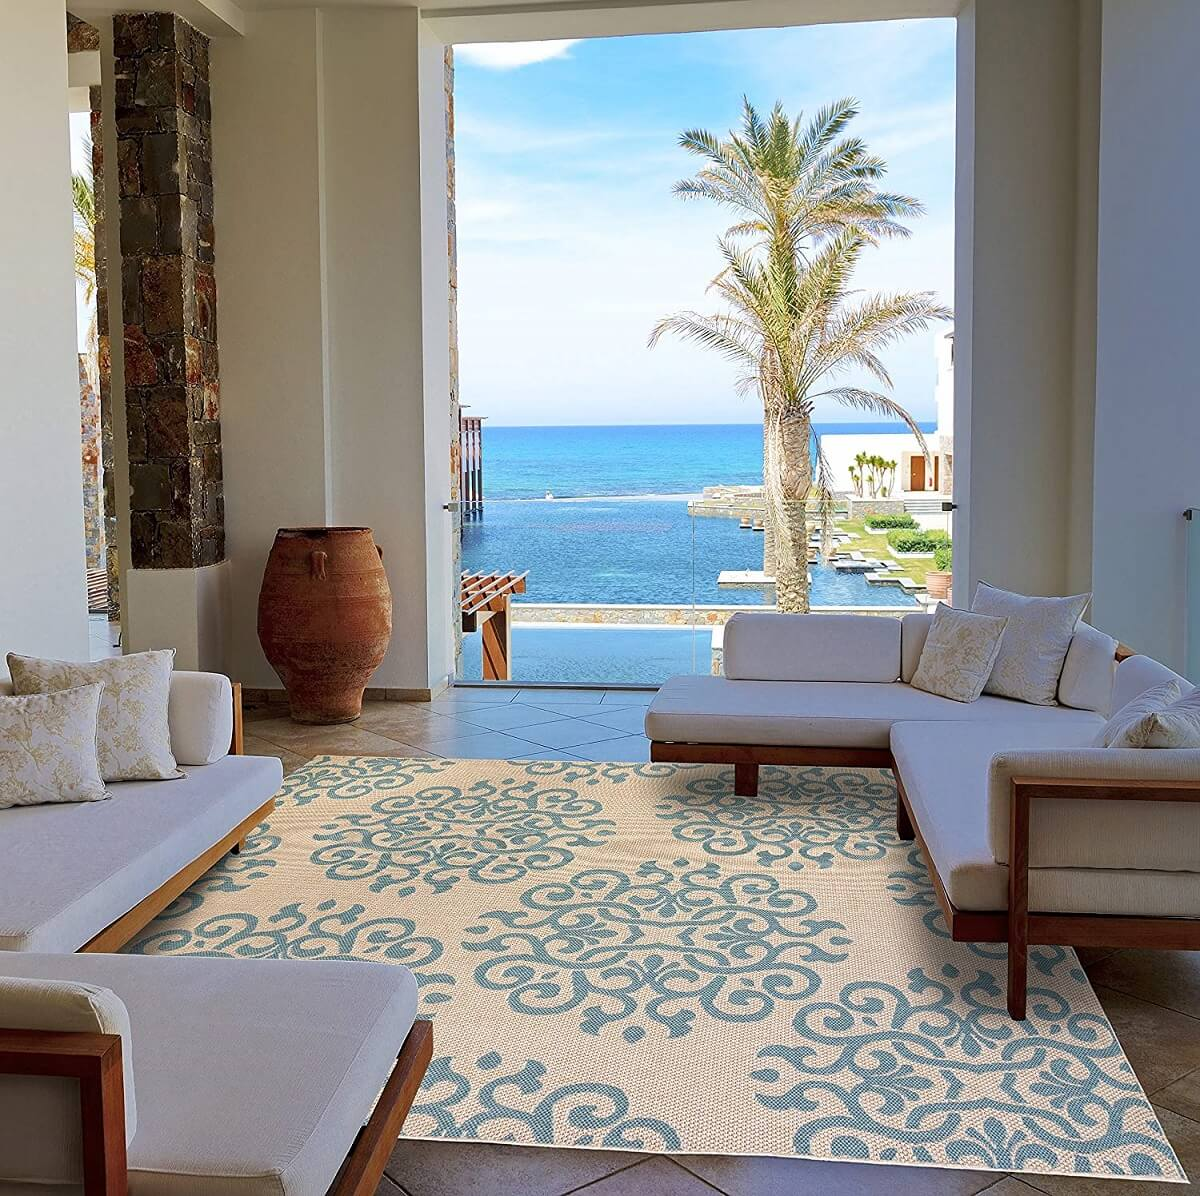 Extra-large Contemporary Outdoor Rug